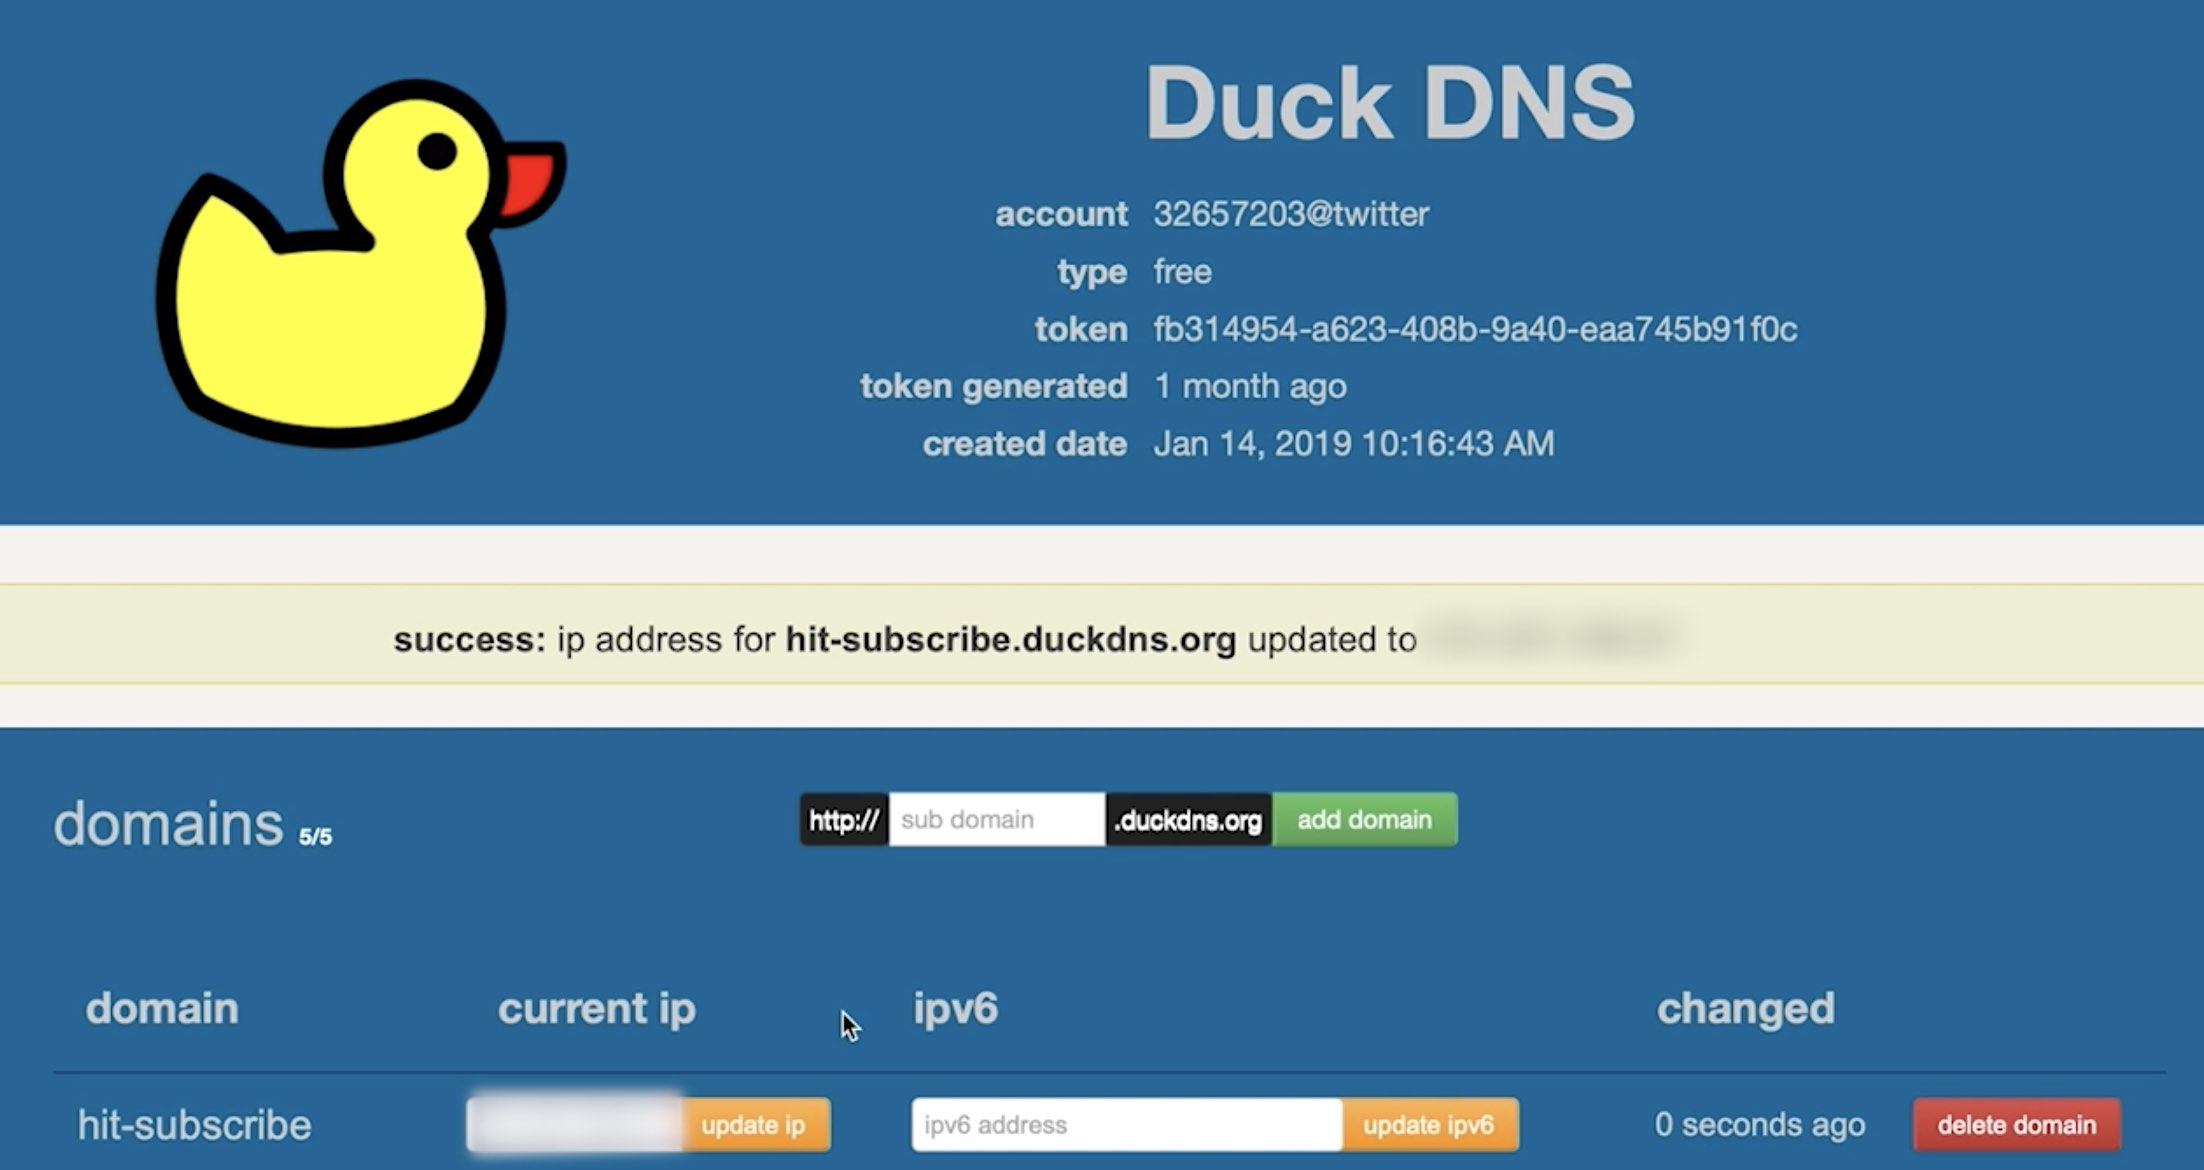 successfully updated duckddns sub-domain needed for the nextcloud